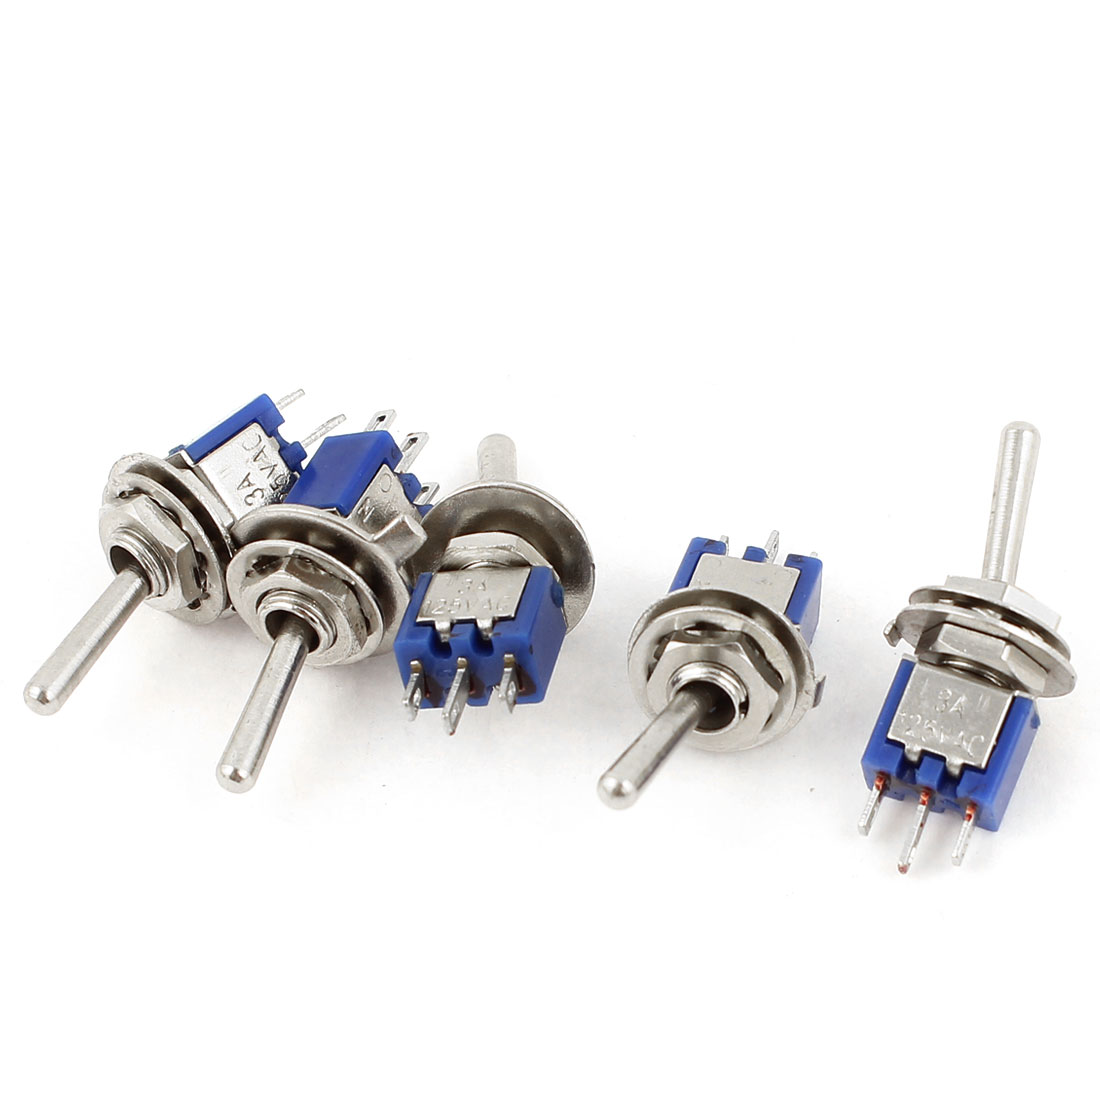 AC 125V 3A 3 Pins ON-ON 2 Positions SPDT Toggle Switch Dark Blue 5pcs